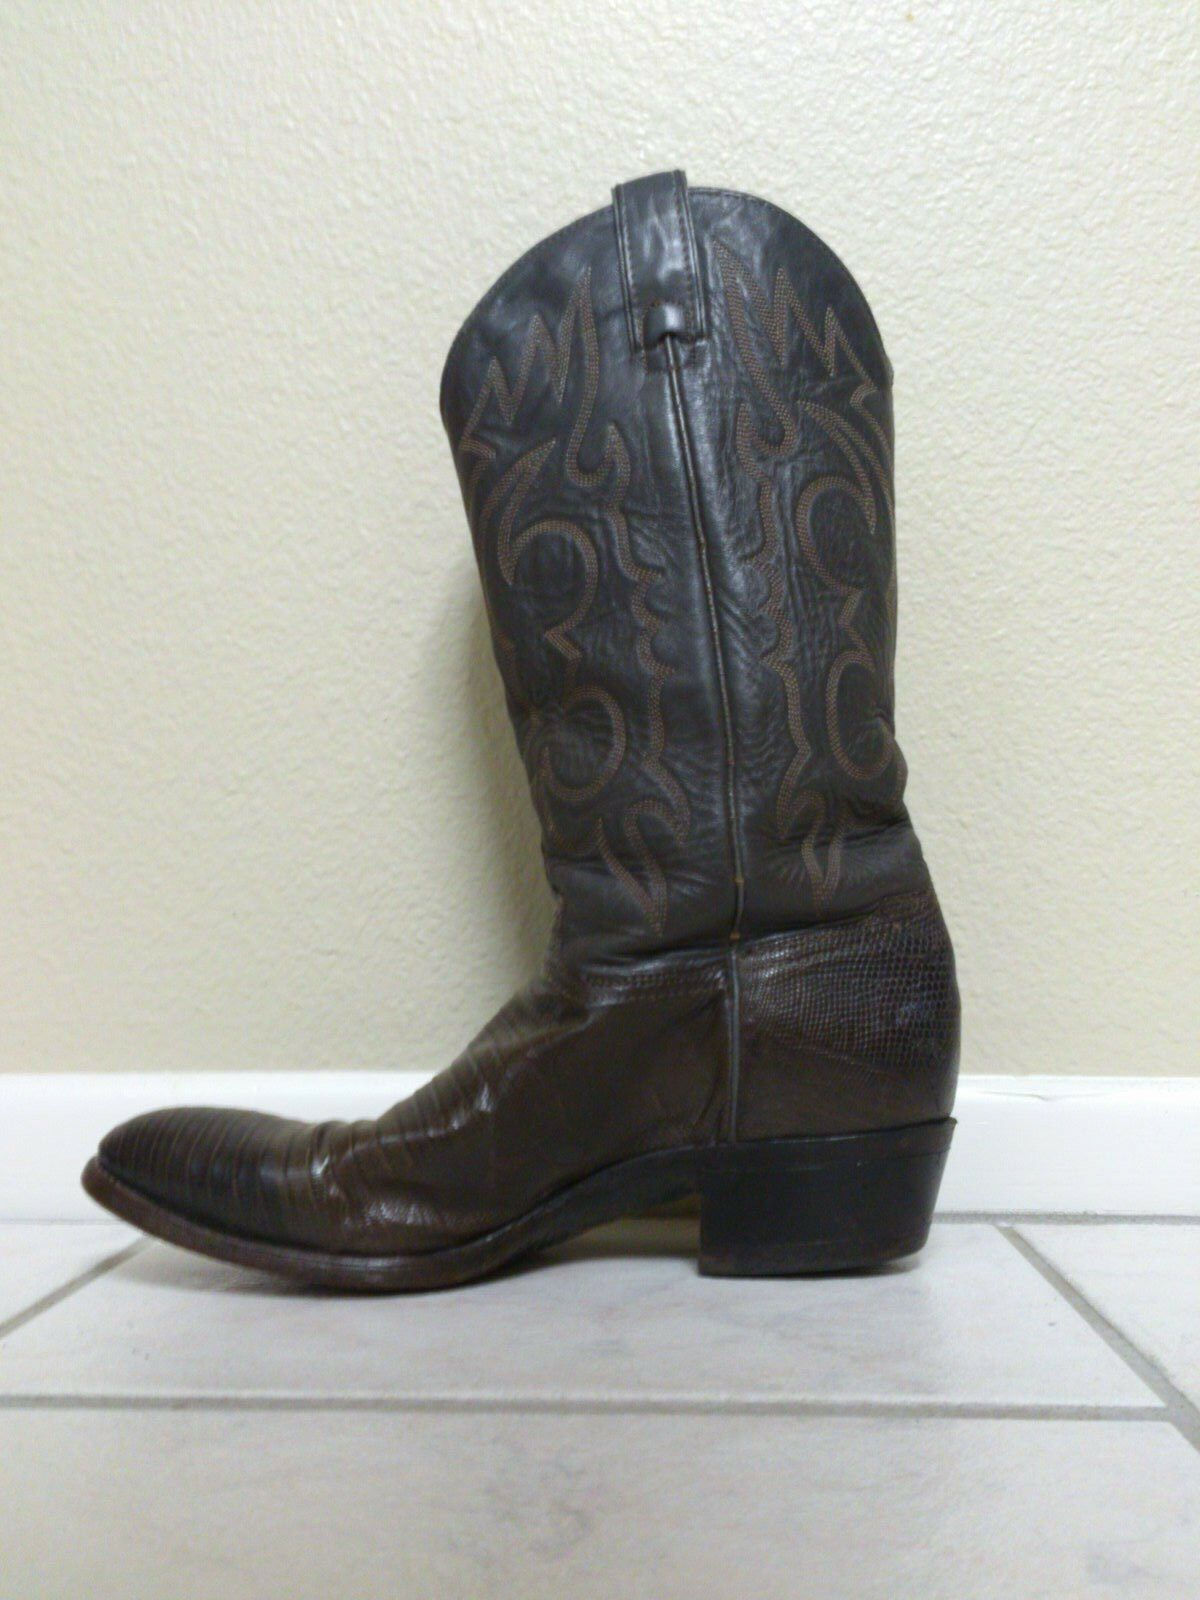 COWBOY BOOTS Imperial Exotic Lizard Skin Men's size 8.5 (read)